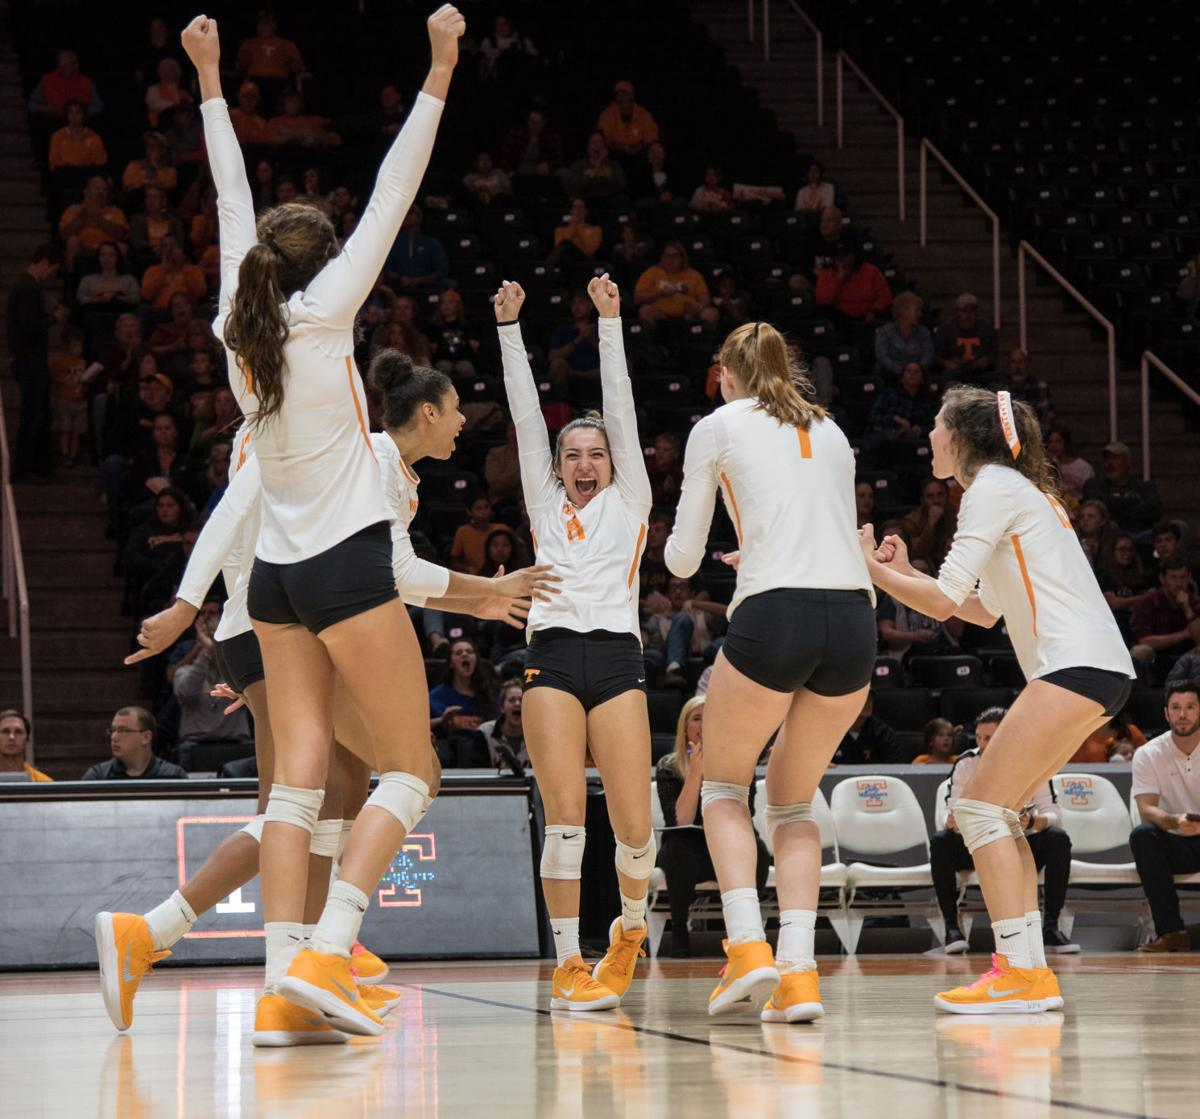 Tennessee Volleyball Wins Ninth Consecutive Match Sports Utdailybeacon Com